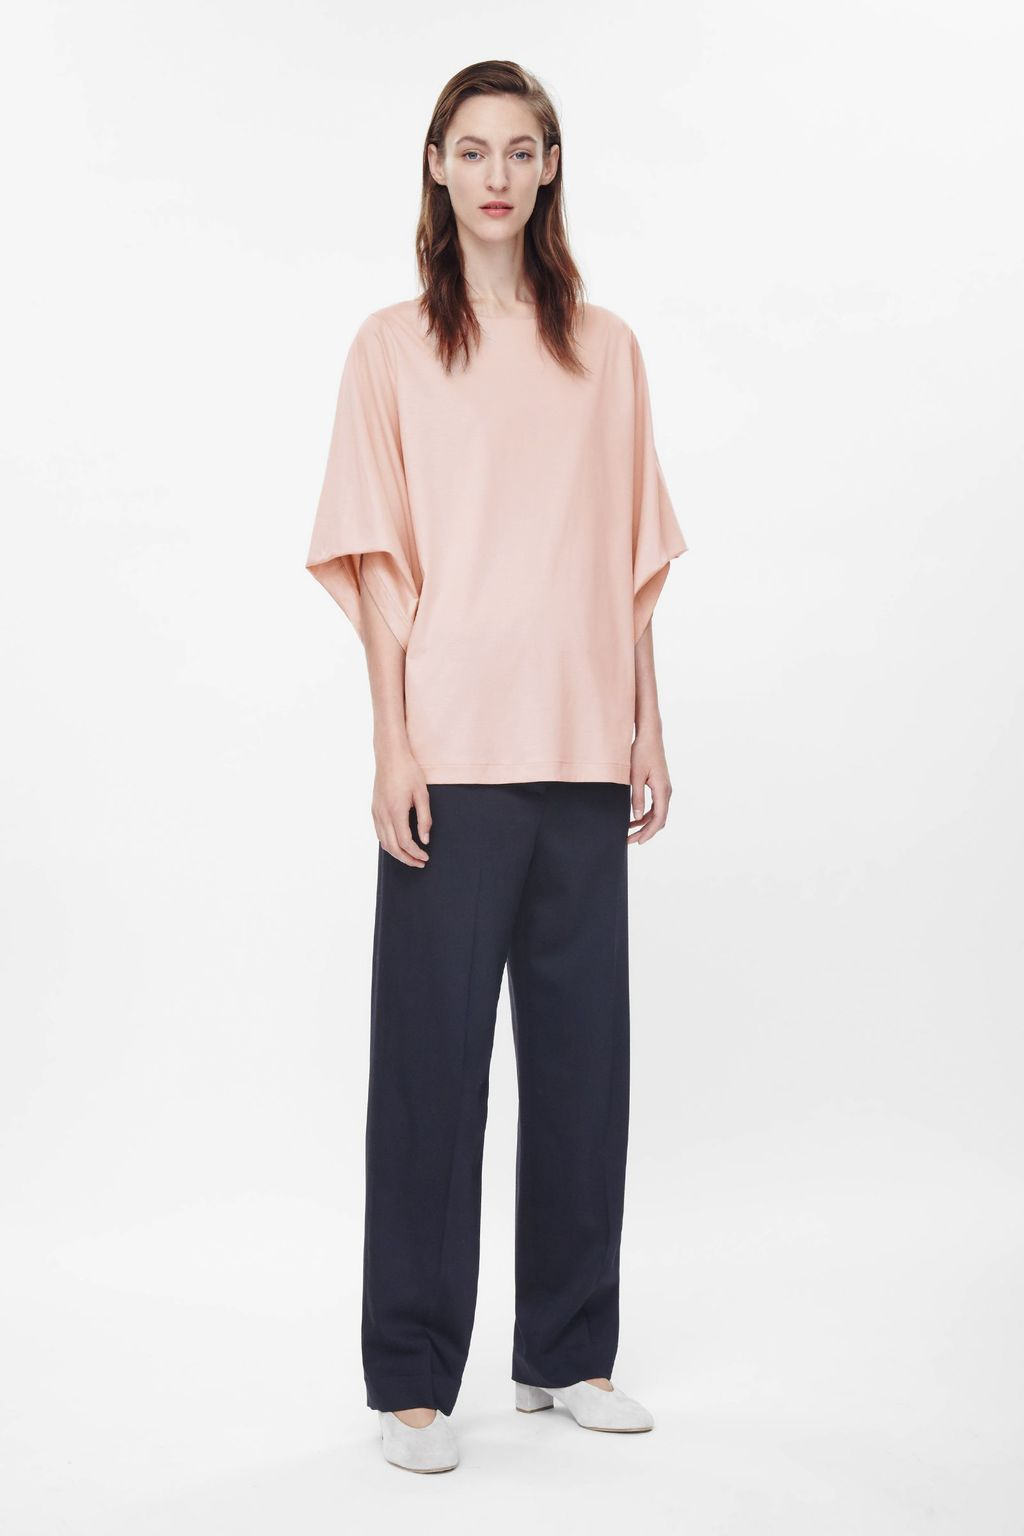 Draped Sleeve Jersey Top - neckline: round neck; sleeve style: dolman/batwing; pattern: plain; predominant colour: nude; occasions: casual, creative work; length: standard; style: top; fibres: cotton - 100%; fit: loose; sleeve length: 3/4 length; pattern type: fabric; texture group: jersey - stretchy/drapey; season: a/w 2015; trends: pink aw 15; wardrobe: basic